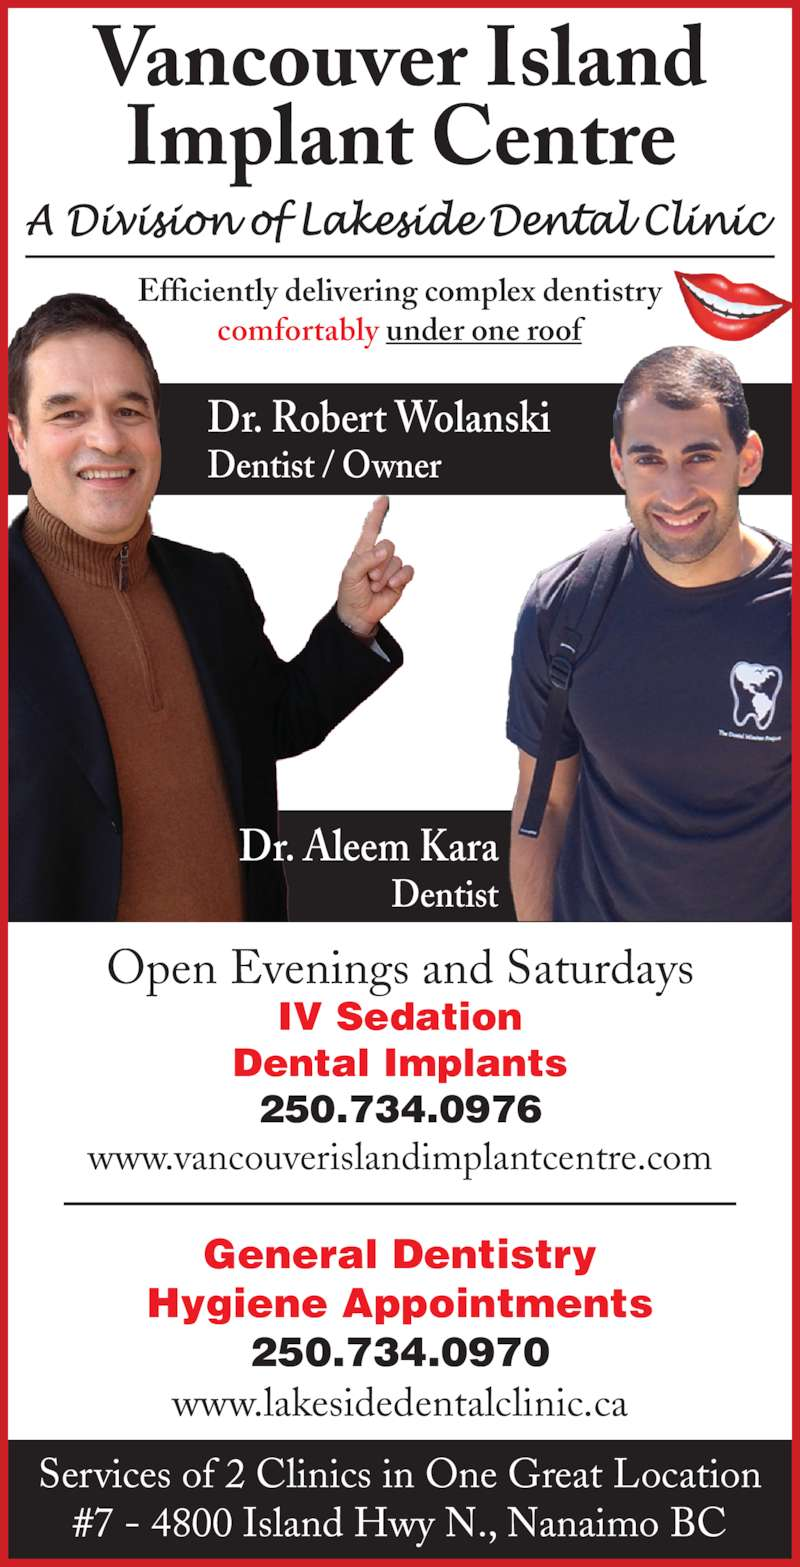 Vancouver Island Implant Centre (250-756-1666) - Display Ad - Vancouver Island Implant Centre Dr. Robert Wolanski Dentist / Owner Dr. Aleem Kara Dentist Efficiently delivering complex dentistry comfortably under one roof Open Evenings and Saturdays IV Sedation Dental Implants 250.734.0976 www.vancouverislandimplantcentre.com Services of 2 Clinics in One Great Location #7 - 4800 Island Hwy N., Nanaimo BC General Dentistry Hygiene Appointments 250.734.0970 www.lakesidedentalclinic.ca